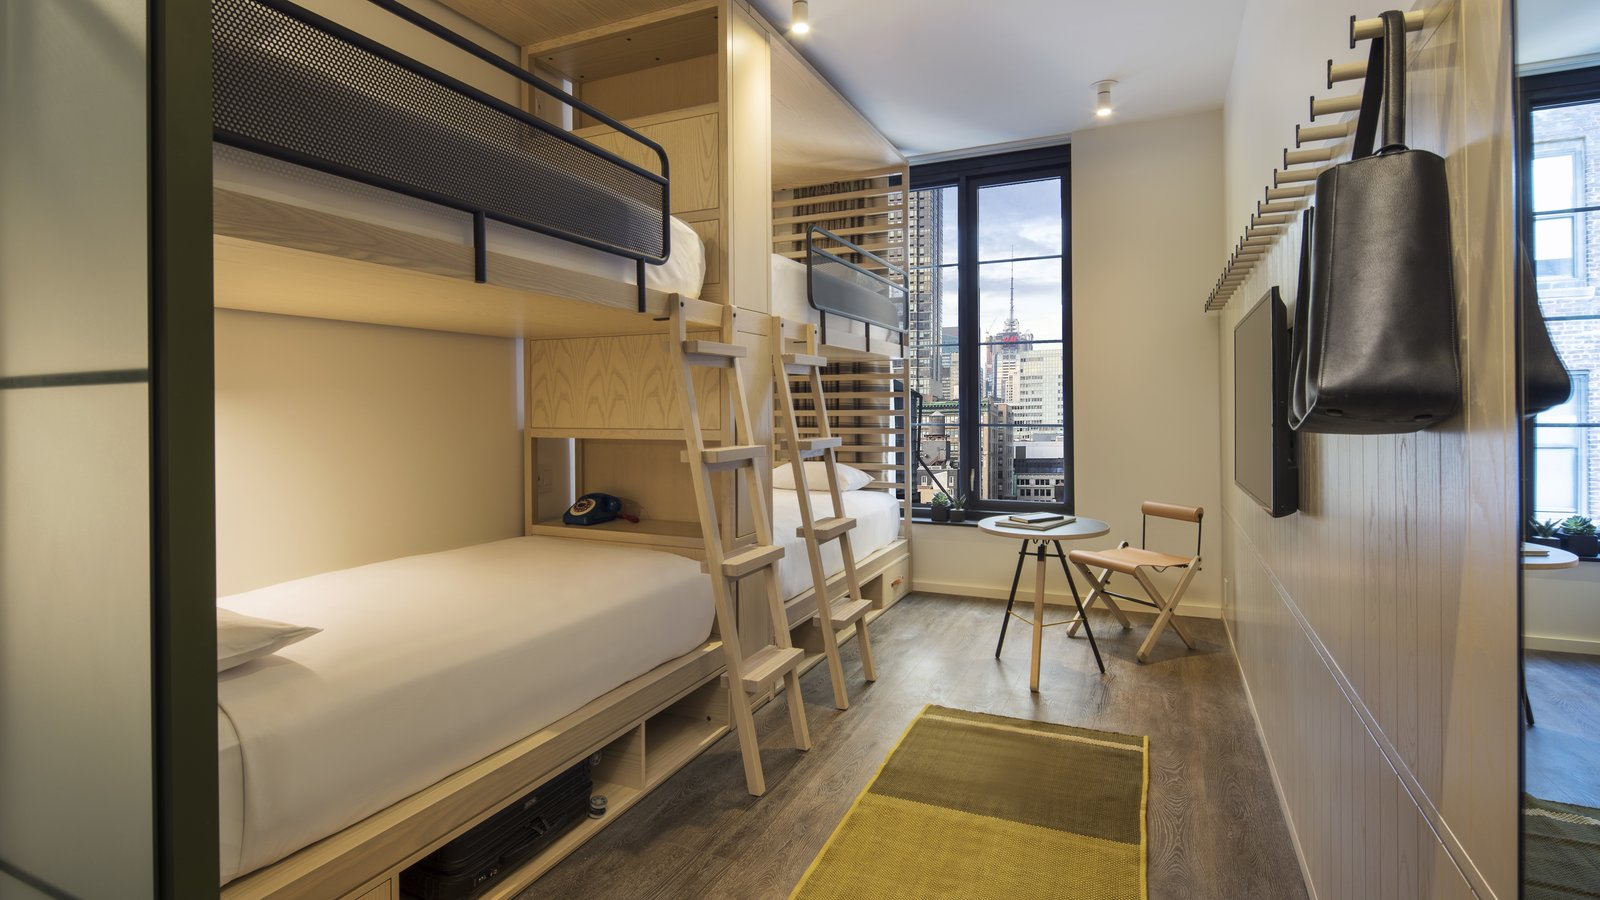 """Bedroom, Medium Hardwood Floor, Storage, Ceiling Lighting, Chair, Rug Floor, and Bed The bunk rooms exhibit the same attention to detail. """"There's a huge benefit to bringing luxury hotel designers like Yabu Pushelberg to an affordable hotel project,"""" says Hochberg. """"It's not just about creating an efficient space that looks good. What you end up with is a room with personality and character. It's a room that tells a story.""""  Photos from This Micro-Room Hotel in New York's Flower Market Channels a Decadent Garden of Eden"""